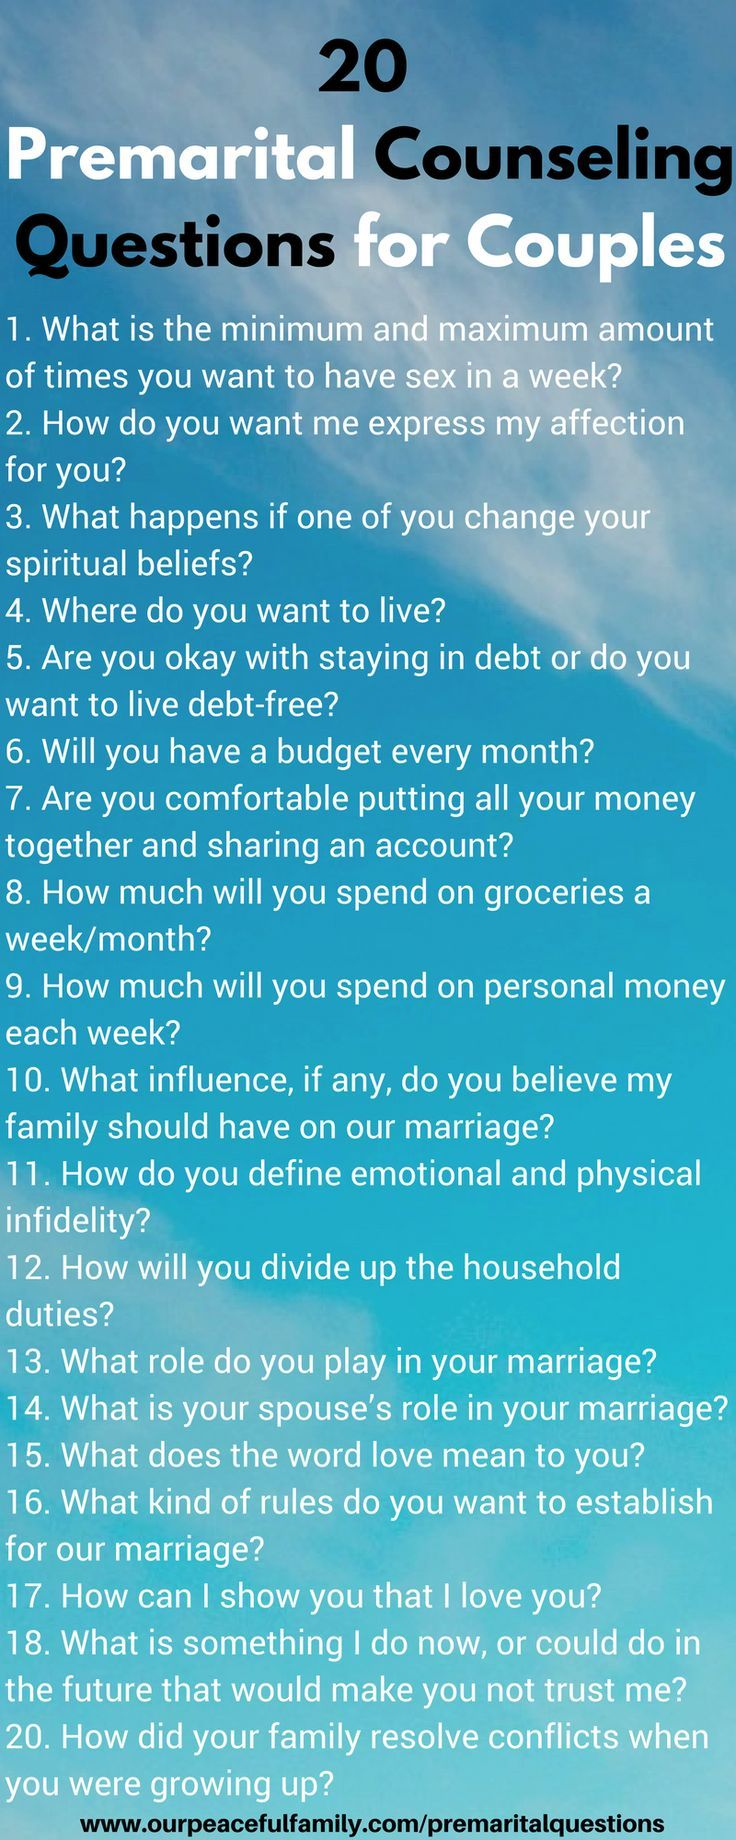 25 Premarital Counseling Questions Each Couple Should Focus on Earlier than Marriage  #C…